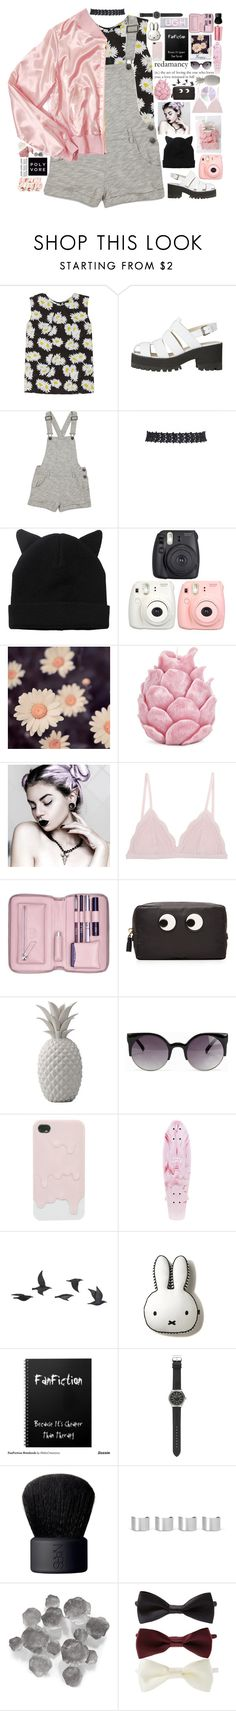 """""""HAPPY BIRTHDAY AGNE!"""" by mysecretismine ❤ liked on Polyvore featuring Equipment, Forever 21, Monki, Zara Home, Cosabella, Lili Radu, Anya Hindmarch, Bloomingville, NLY Accessories and Jayson Home"""